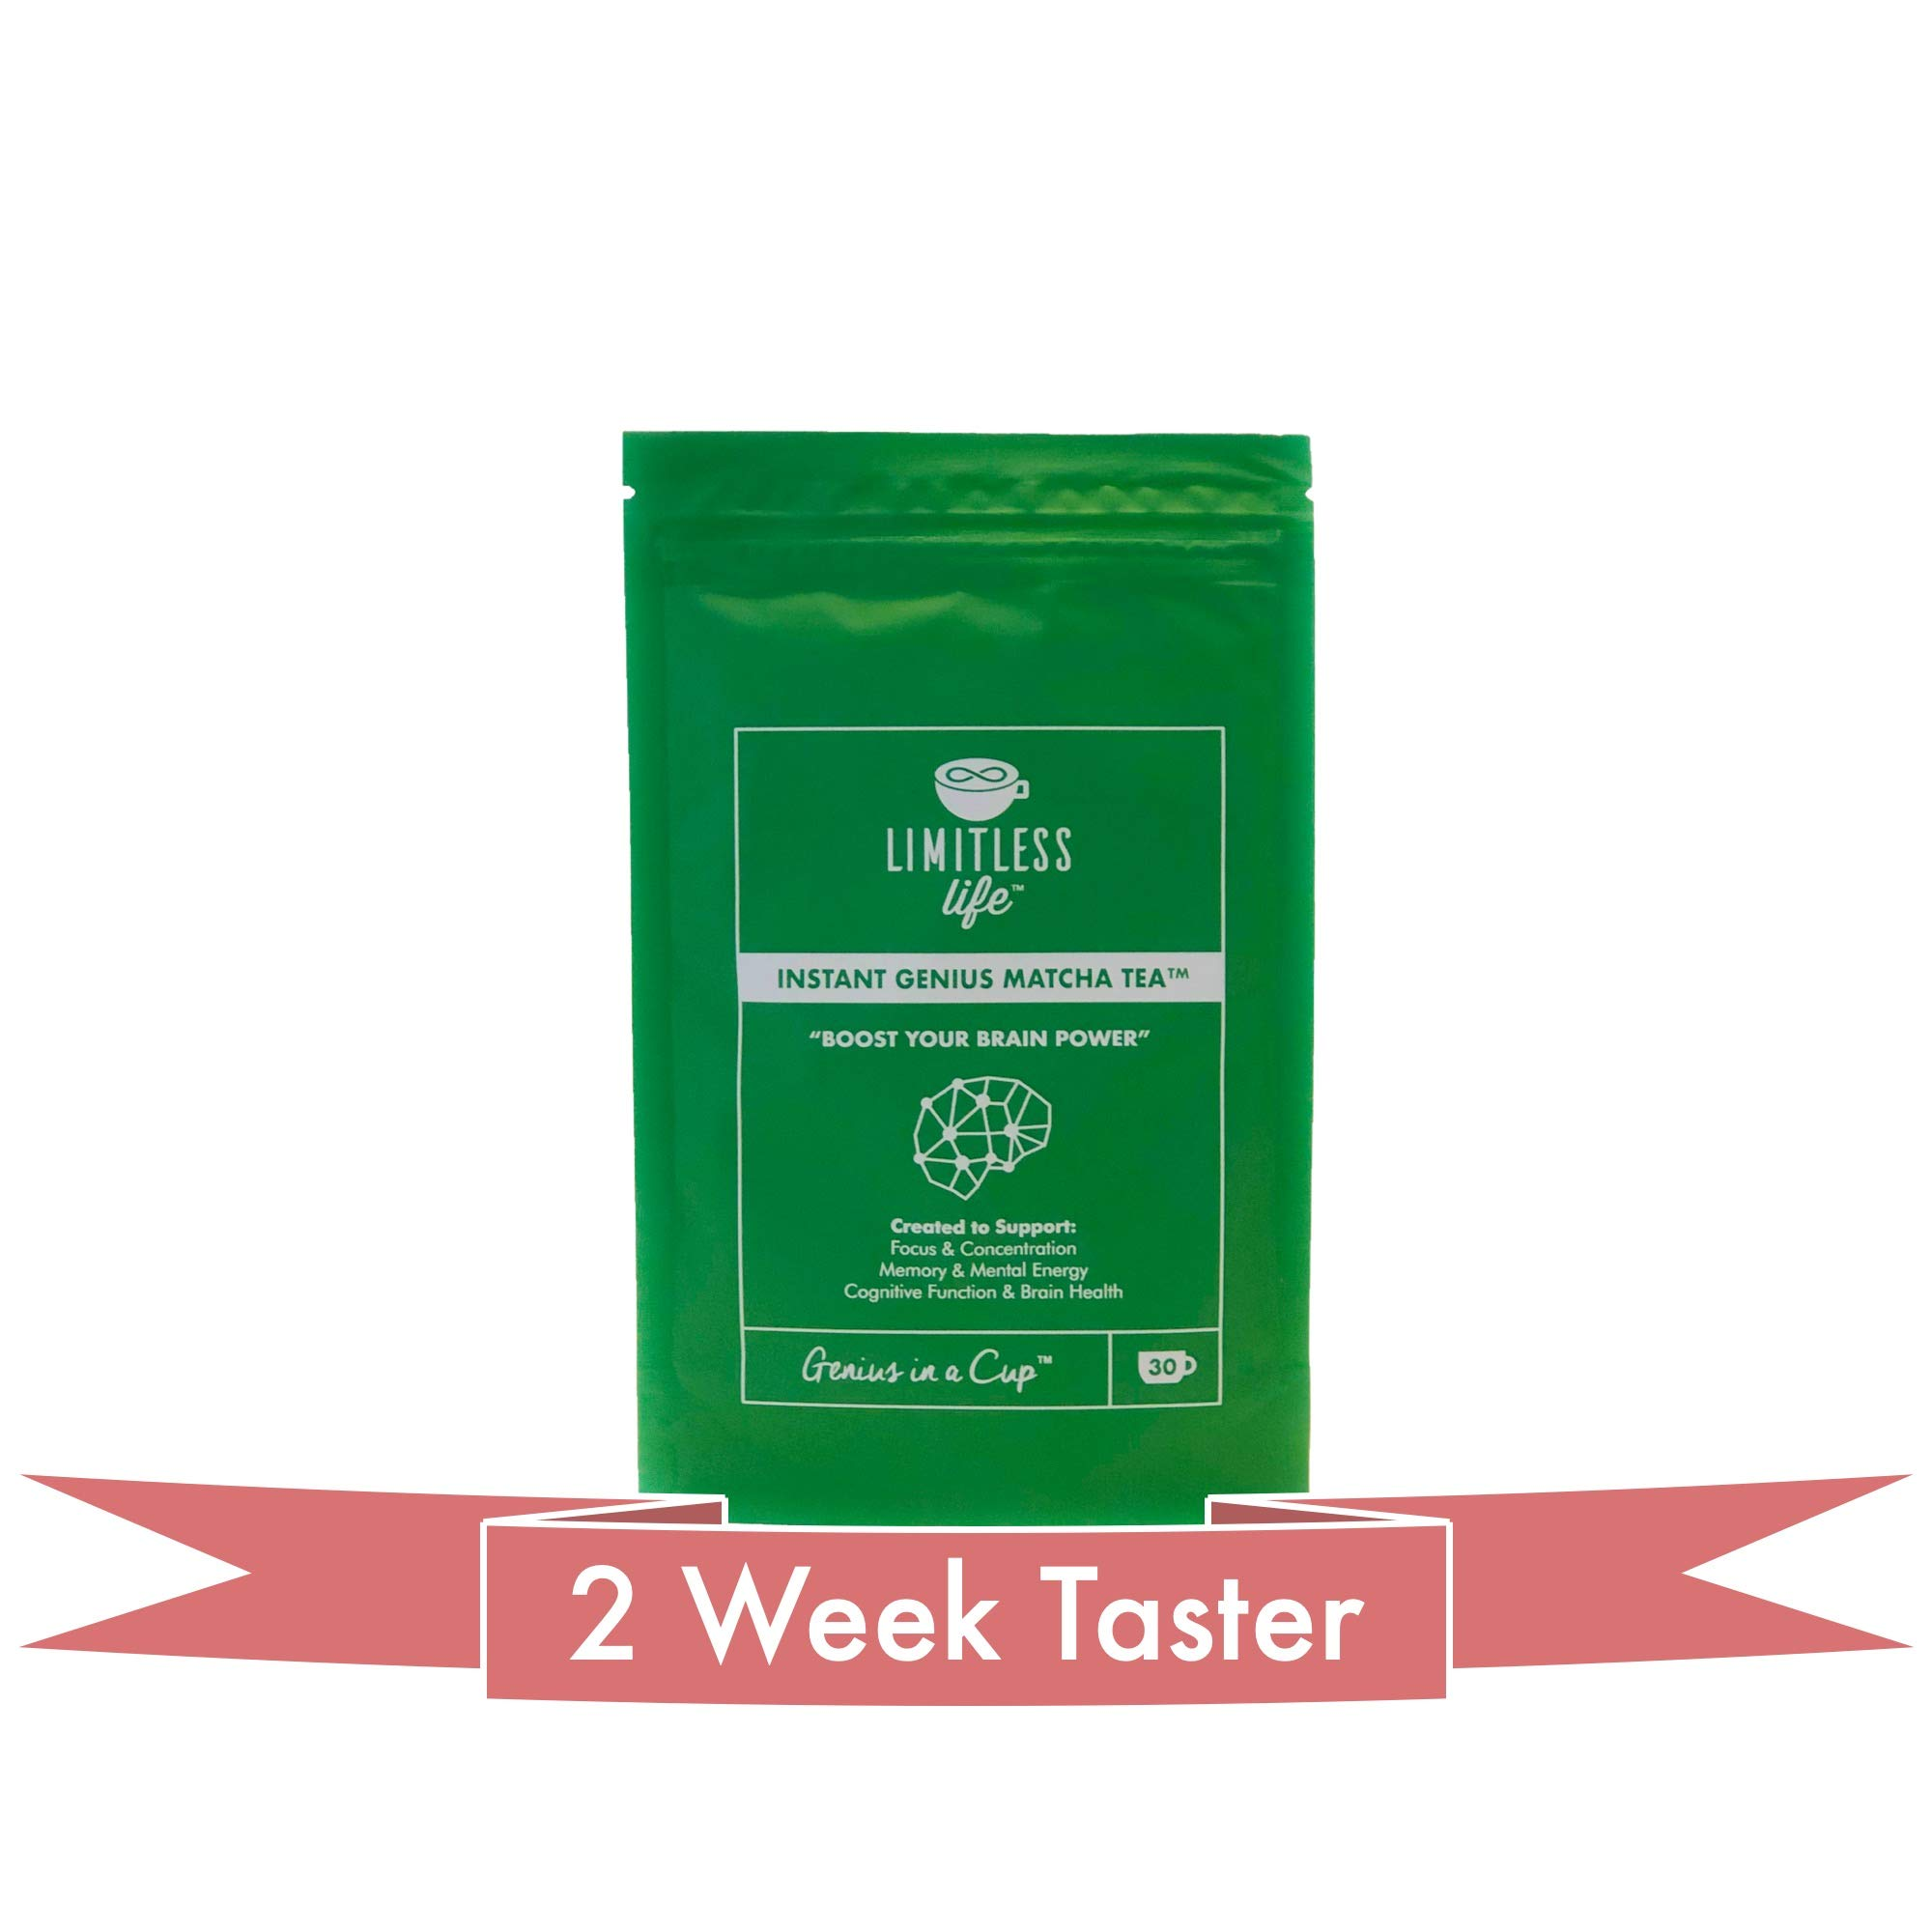 Limitless Life Instant Genius Matcha Tea - Nootropic Infused Matcha Tea created to improve focus, memory, cognitive function and assist brain health